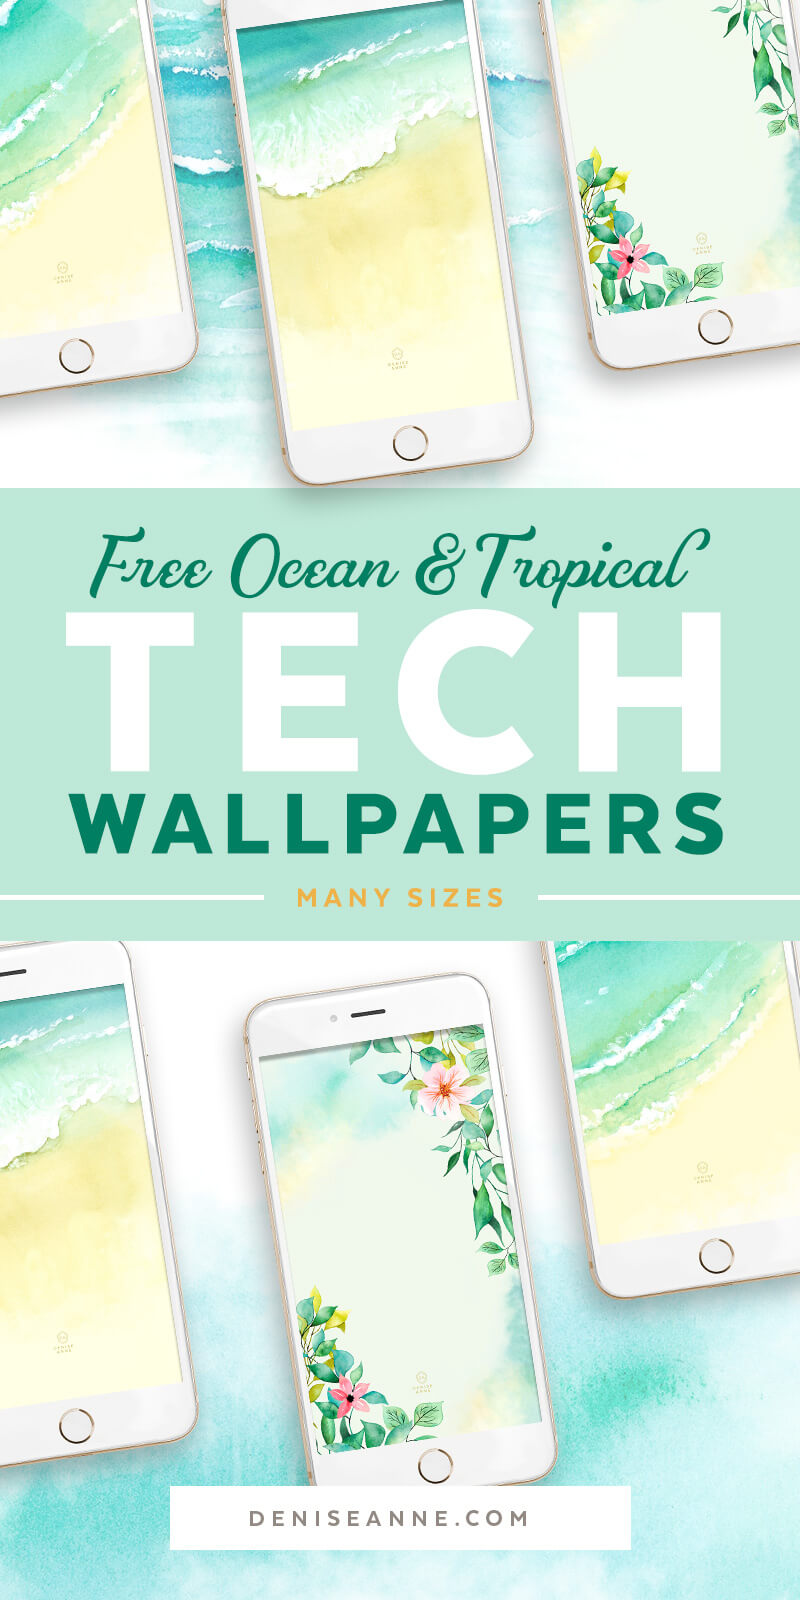 Bring the beach with you and get these free ocean waves and tropical flower phone wallpapers! Available in many phone sizes.